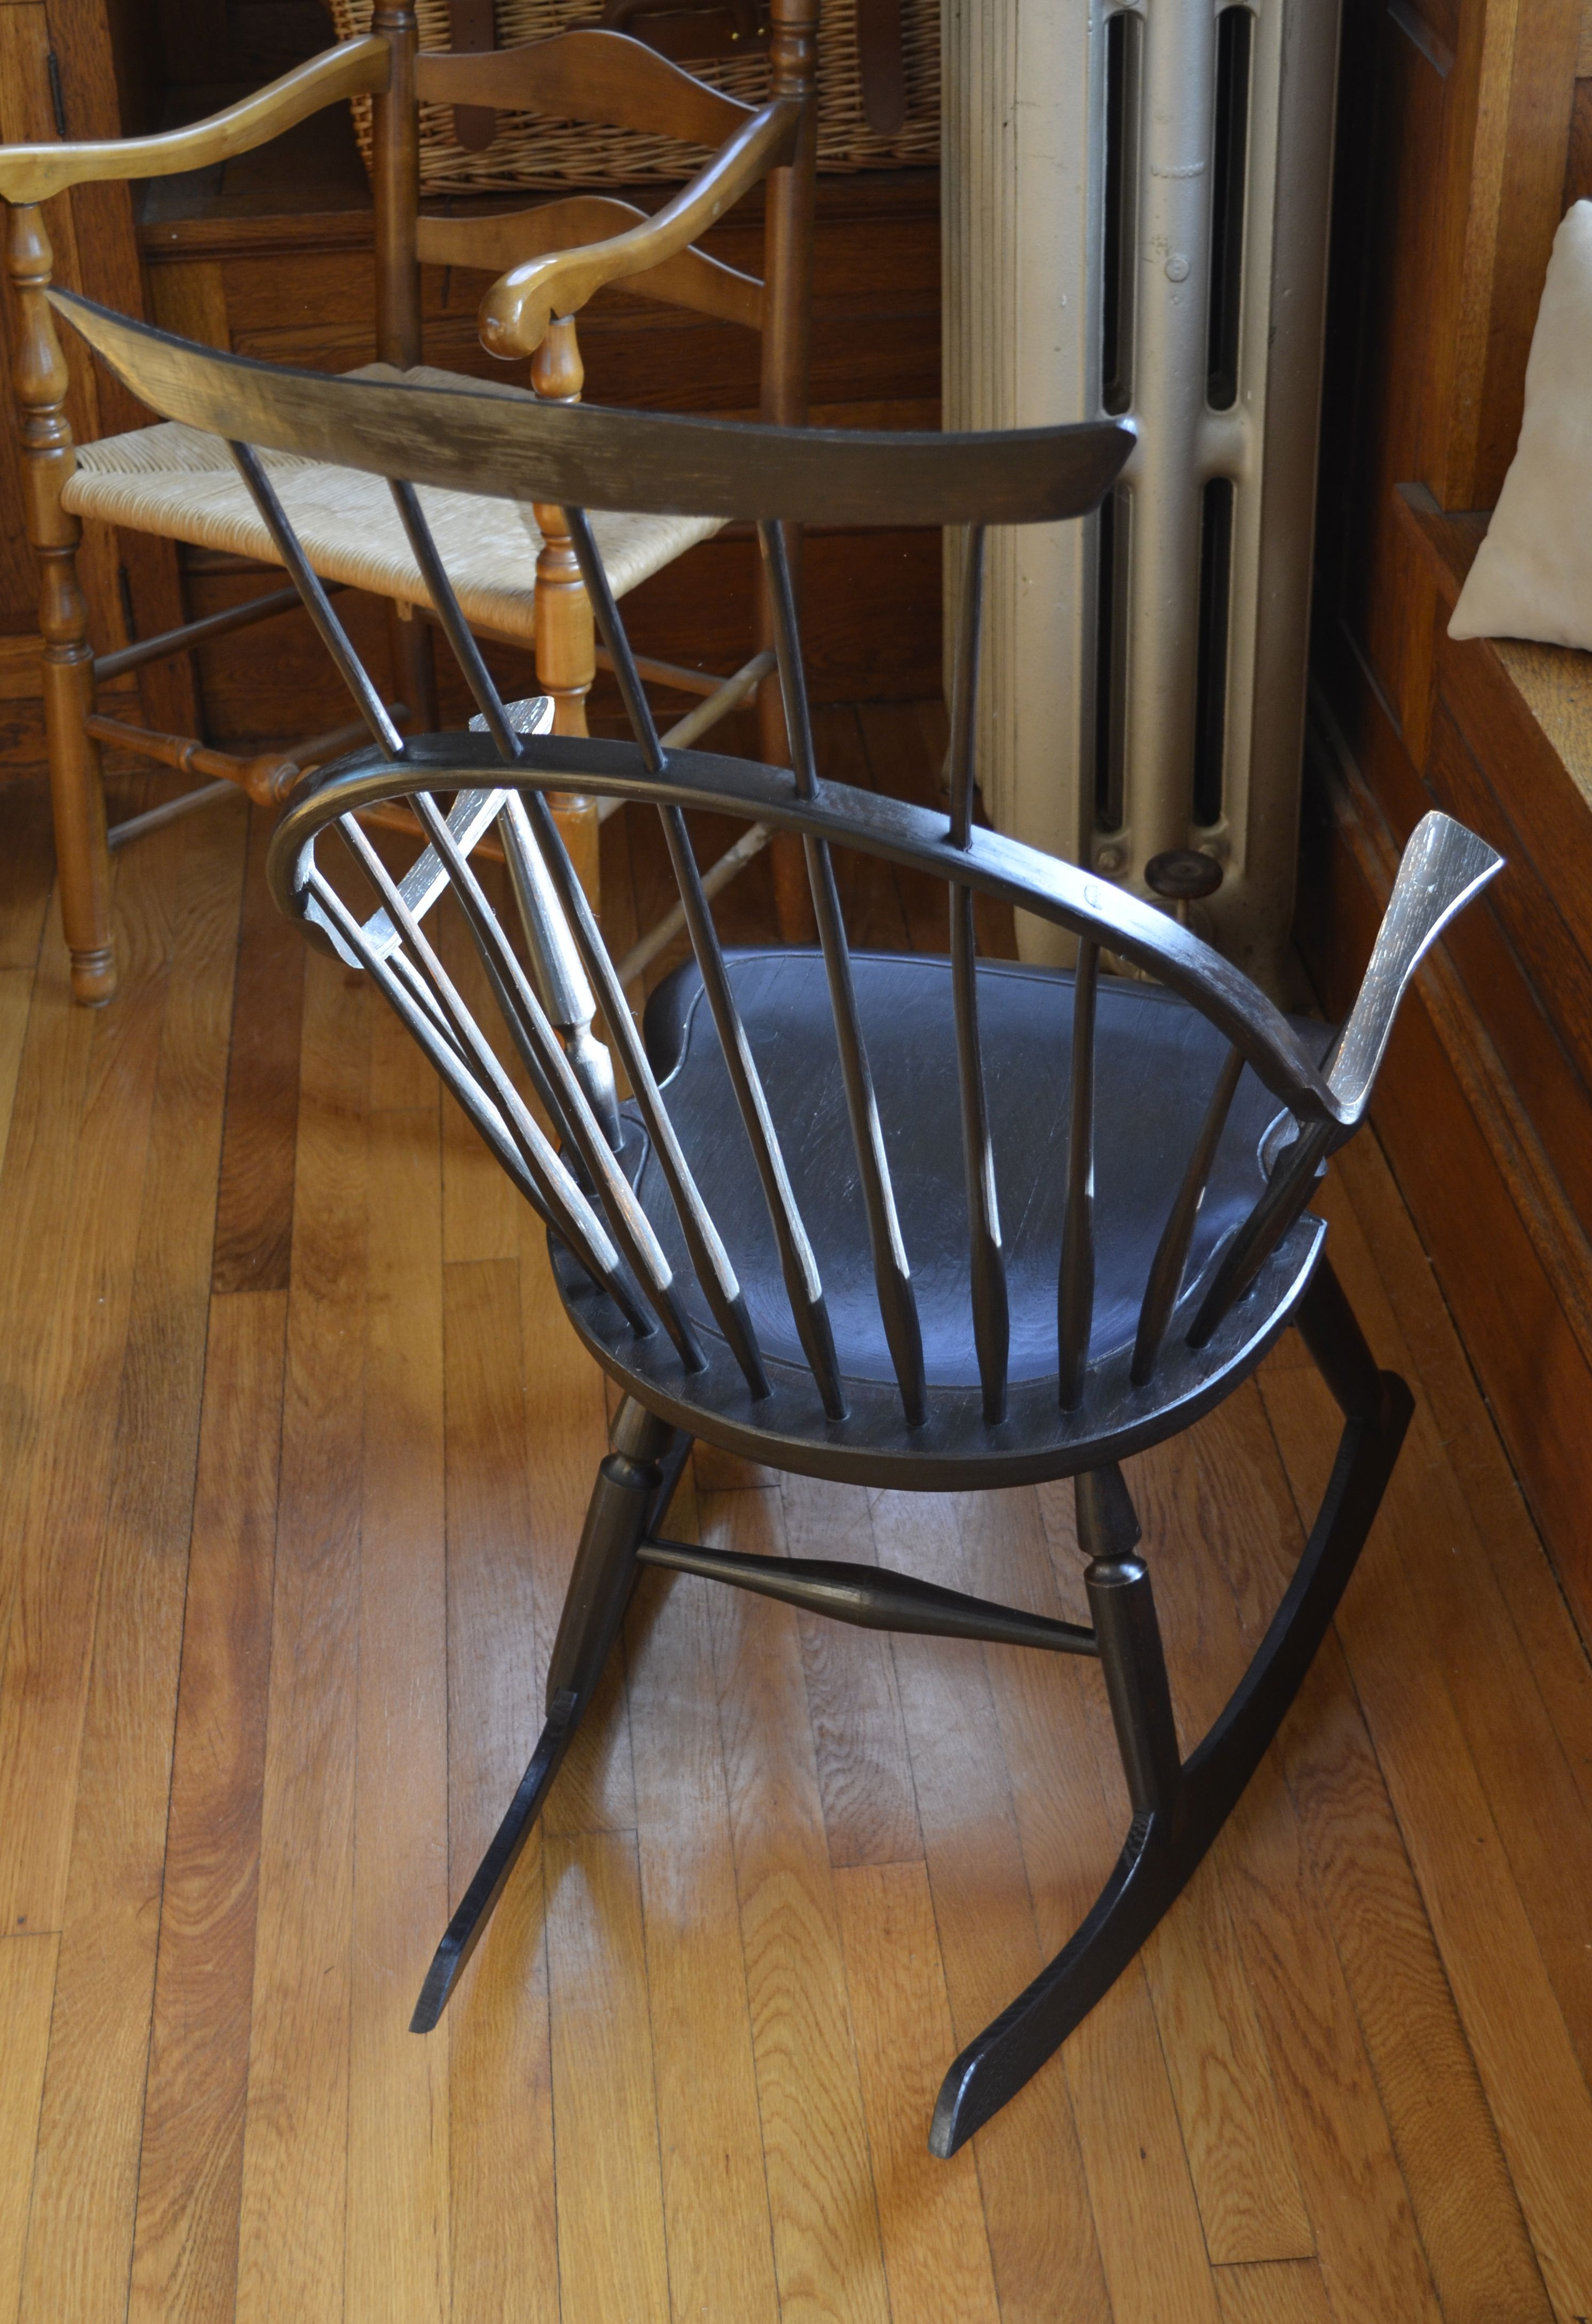 Continuous arm crested rocking chair with black over red